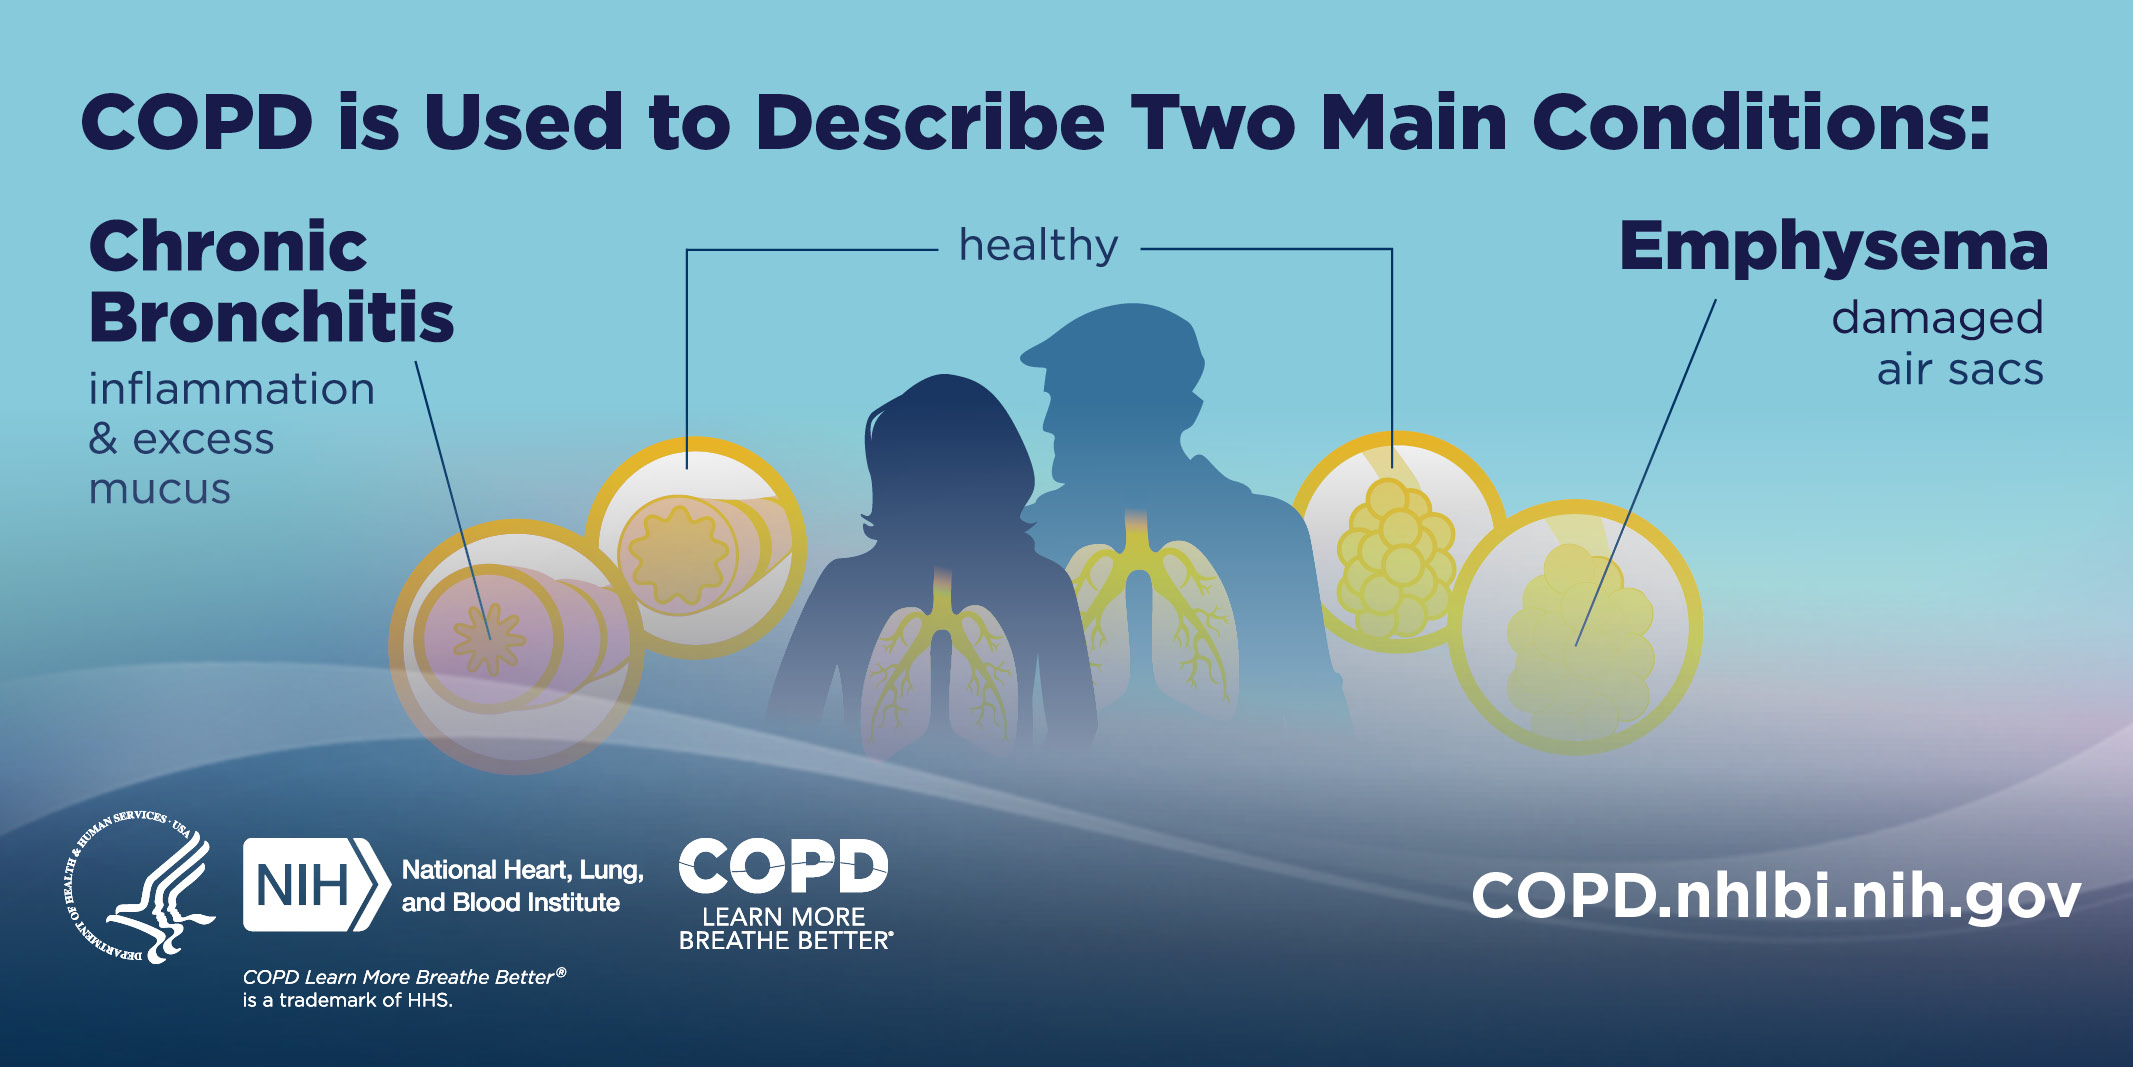 Image with text: COPD is Used to Describe Two Main Conditions: Chronic Bronchitis (inflammation & excess mucus) Emphysema (damaged air sacs). COPD.nhlbi.nih.gov.